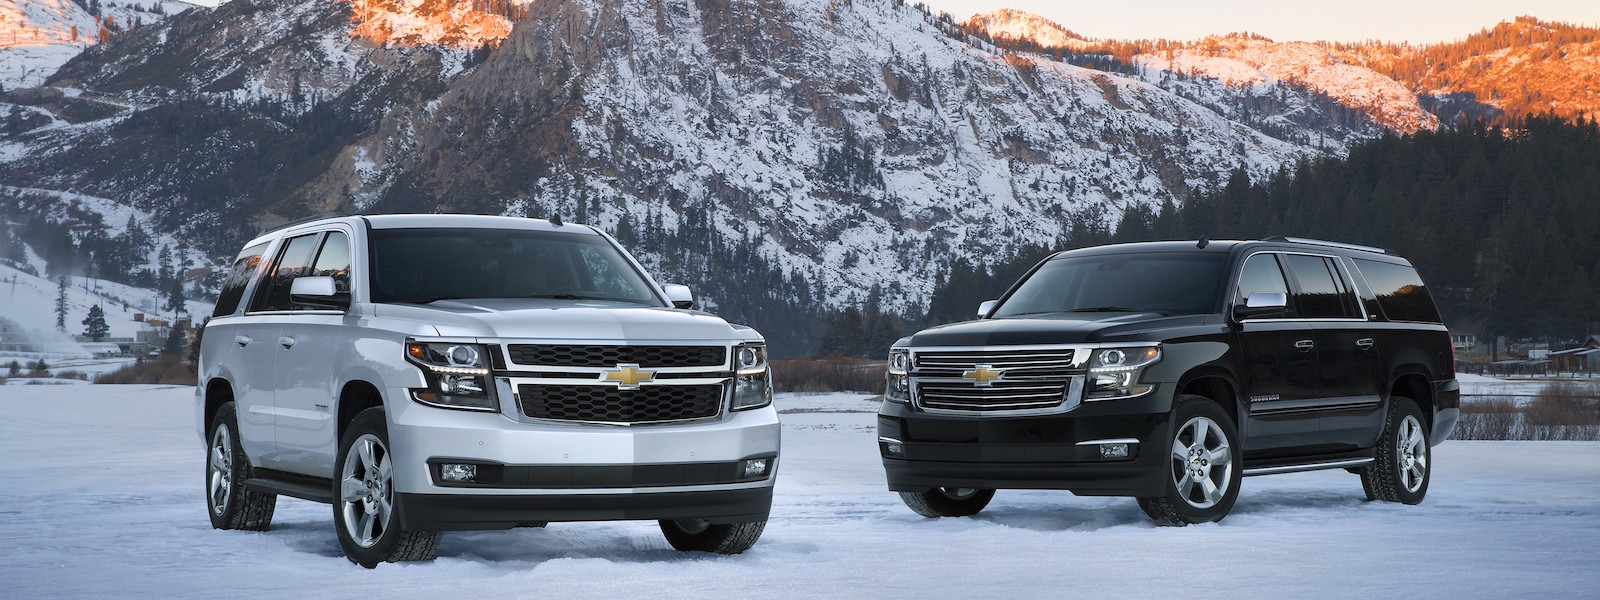 2016 chevy tahoe albany ny depaula chevrolet. Black Bedroom Furniture Sets. Home Design Ideas